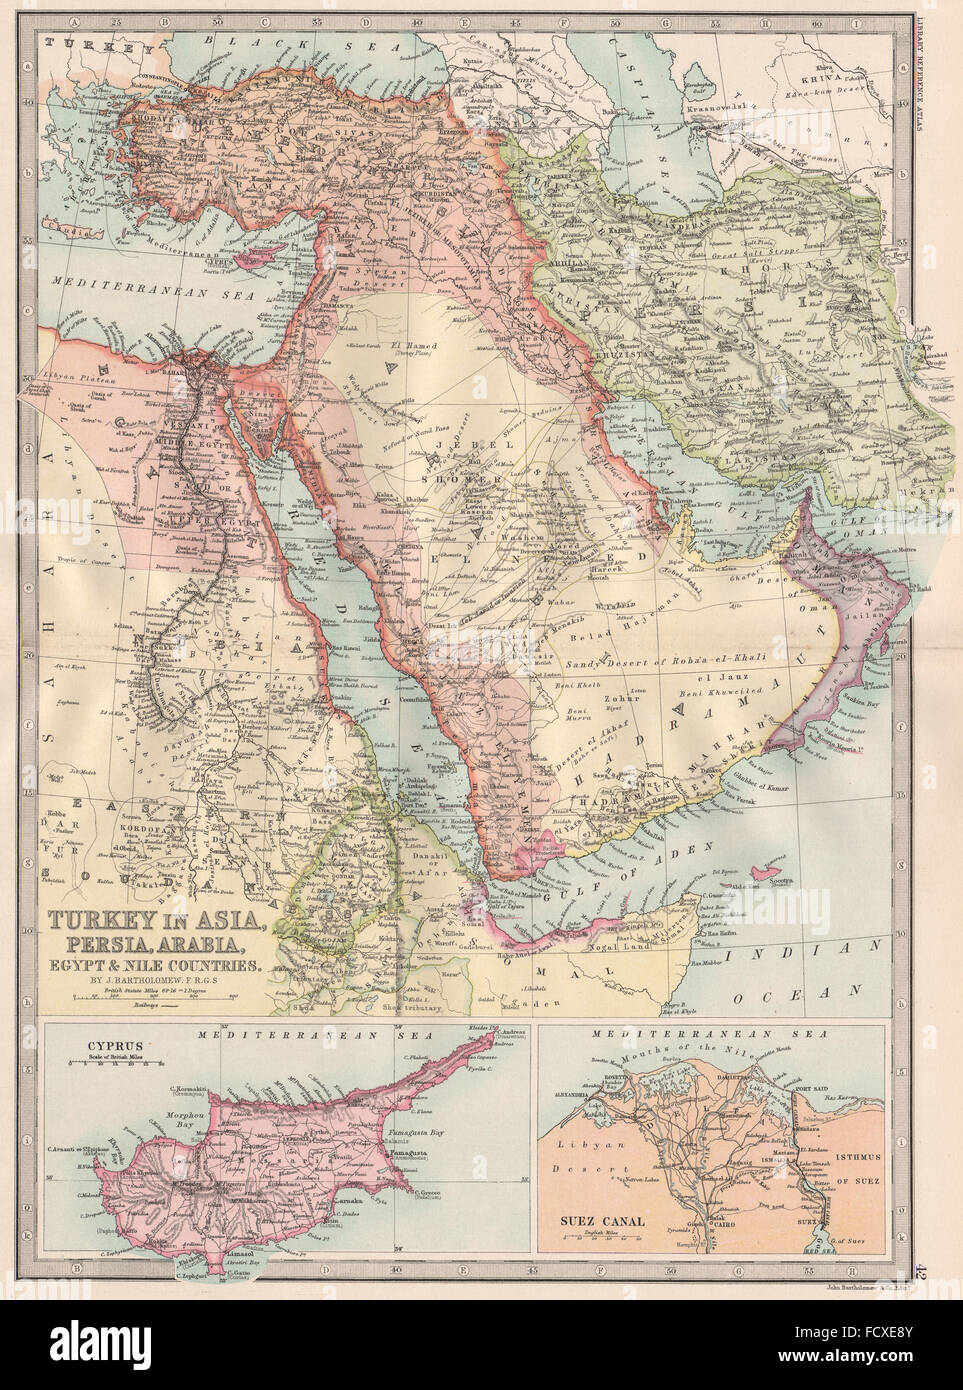 Middle east turkey asia persia iran arabia egypt cyprus suez middle east turkey asia persia iran arabia egypt cyprus suez canal 1890 map gumiabroncs